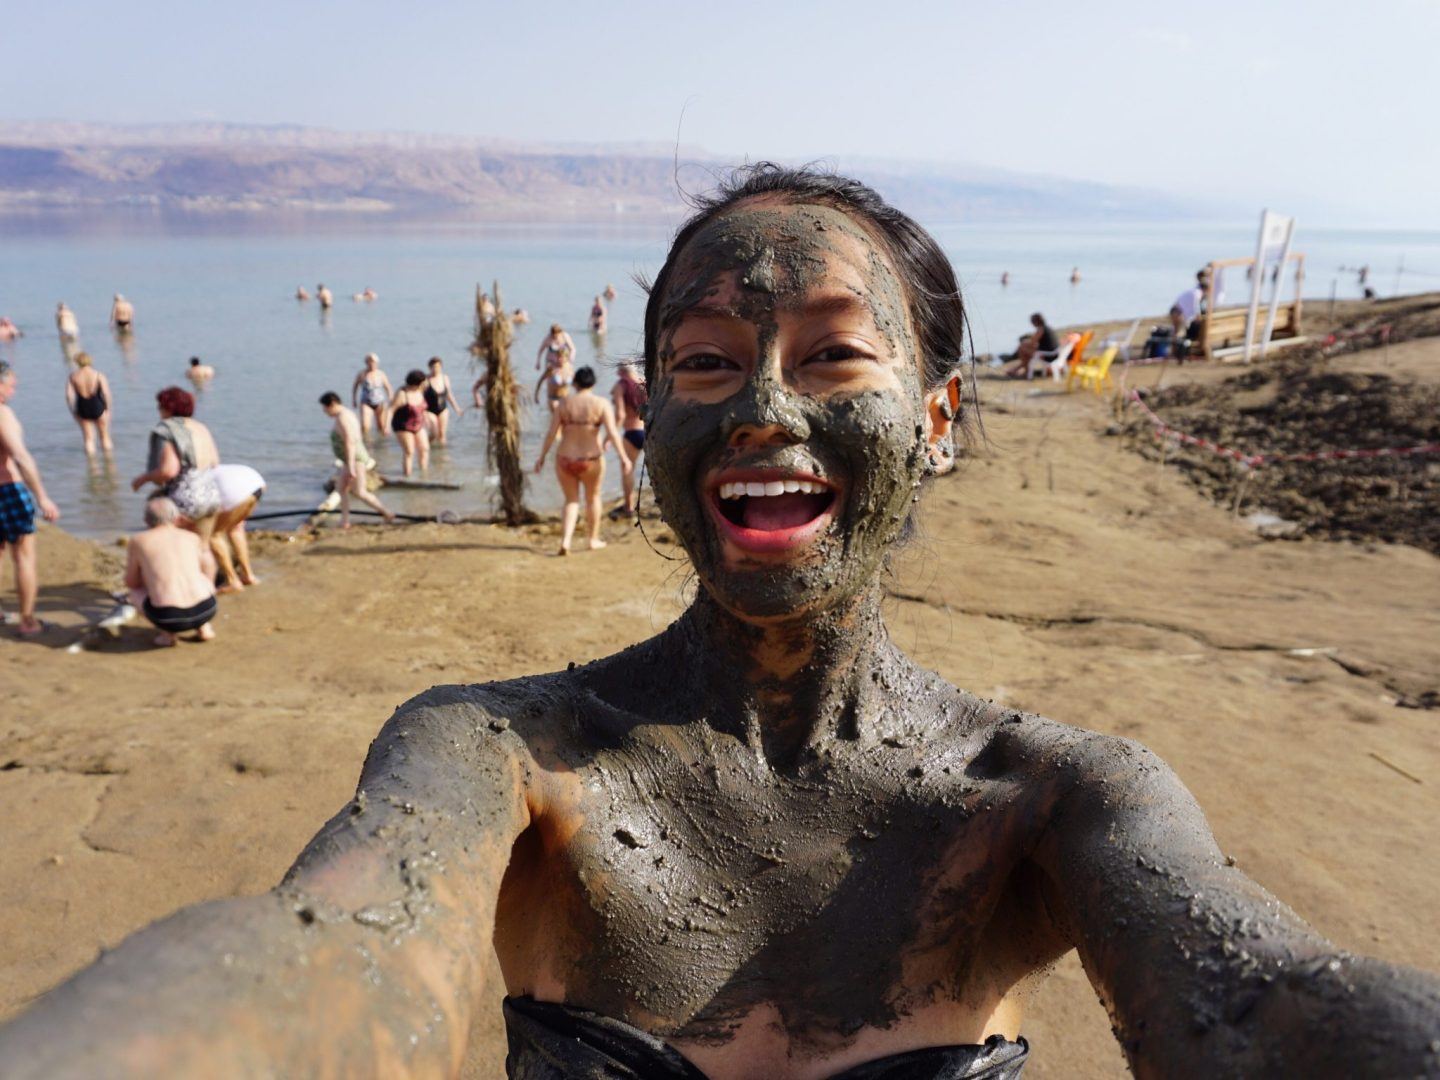 The Beginner's Guide to the Dead Sea